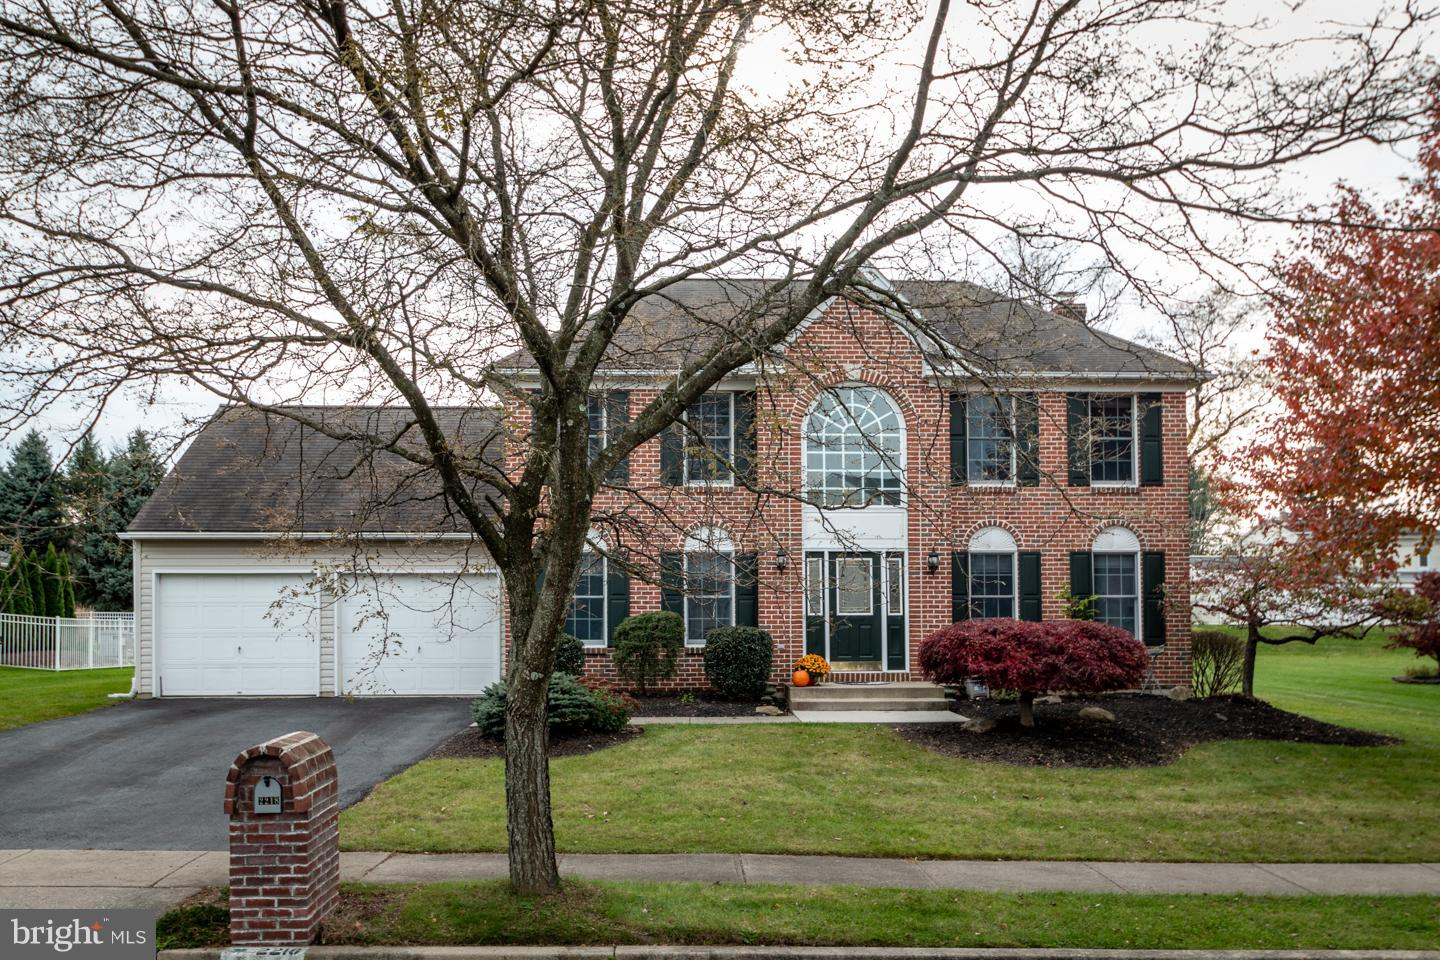 2218 GOLDENROD DRIVE, MACUNGIE, PA 18062